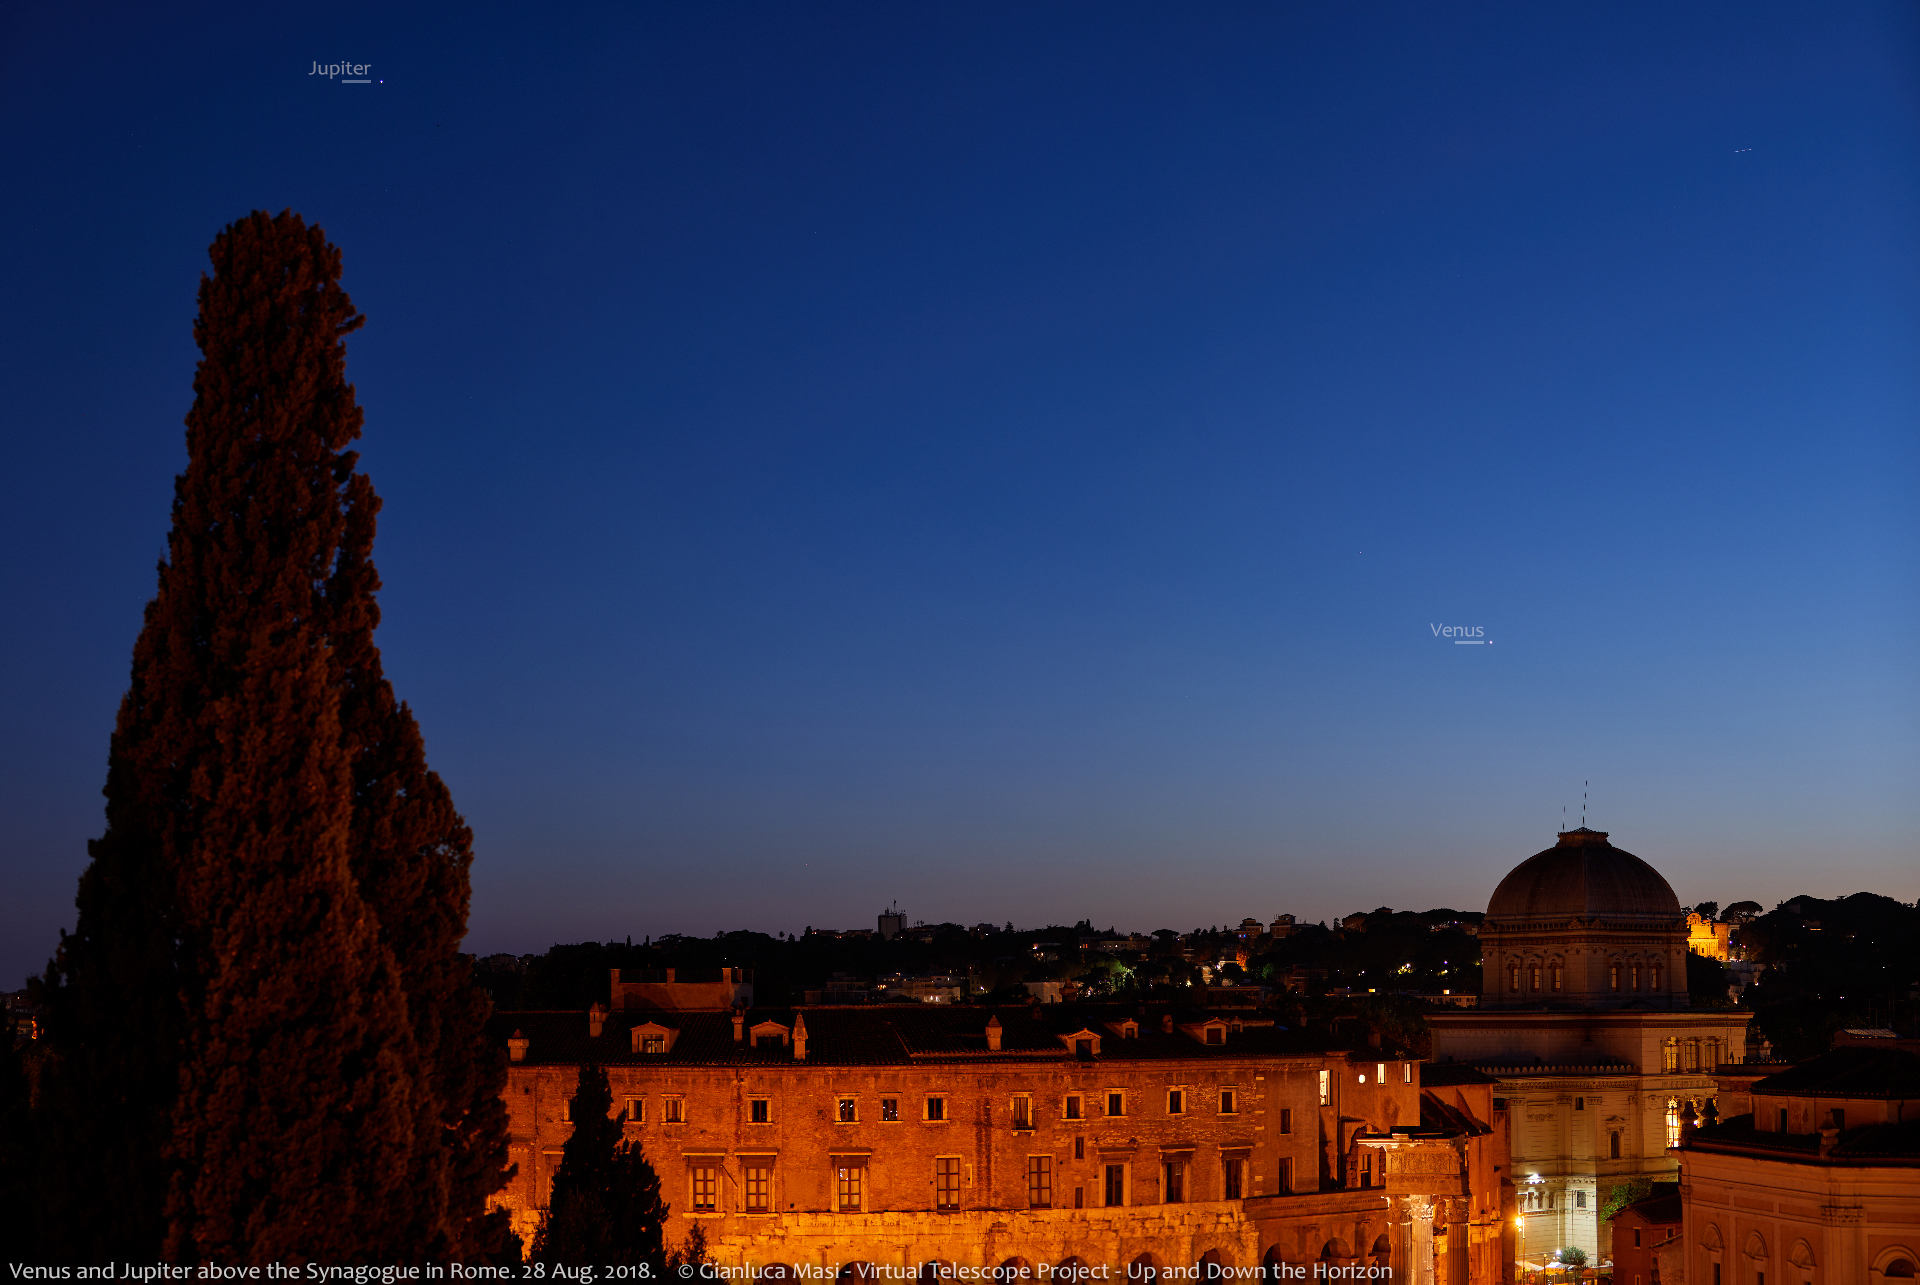 Venus and Jupiter shining above the Synagogue in Rome, at sunset - 28 Aug. 2018